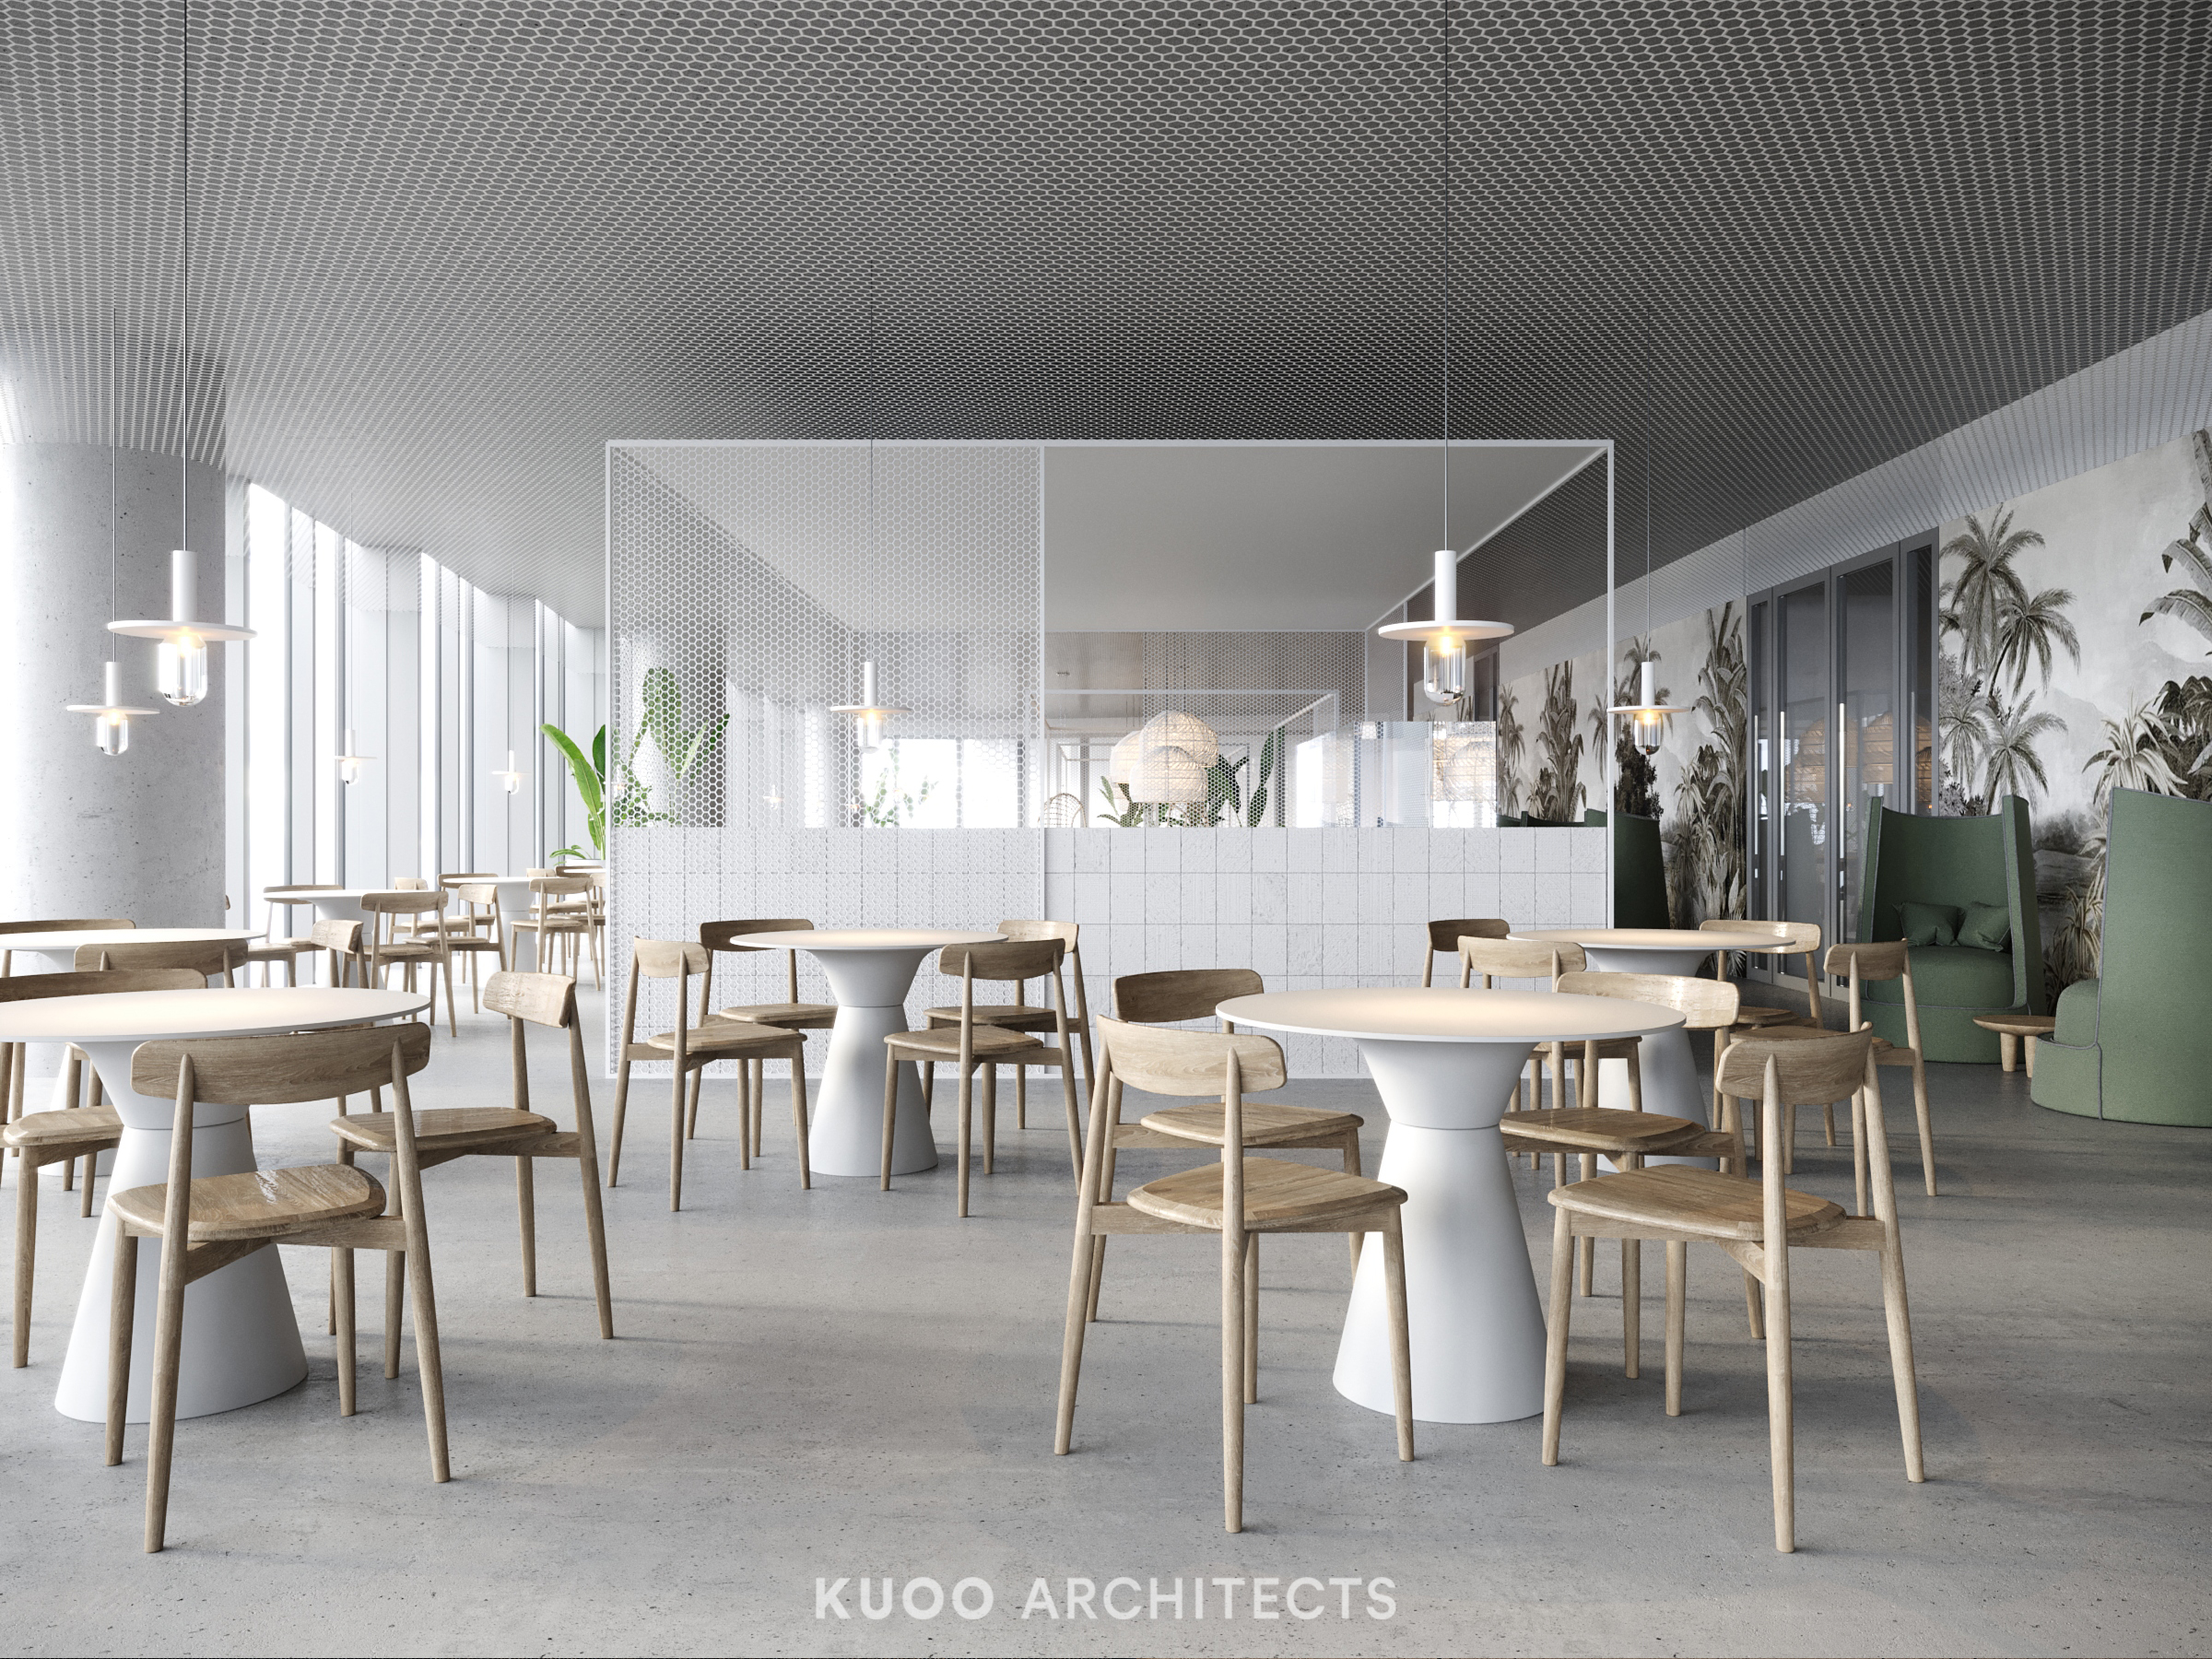 kuoo_architects_mcafe_3